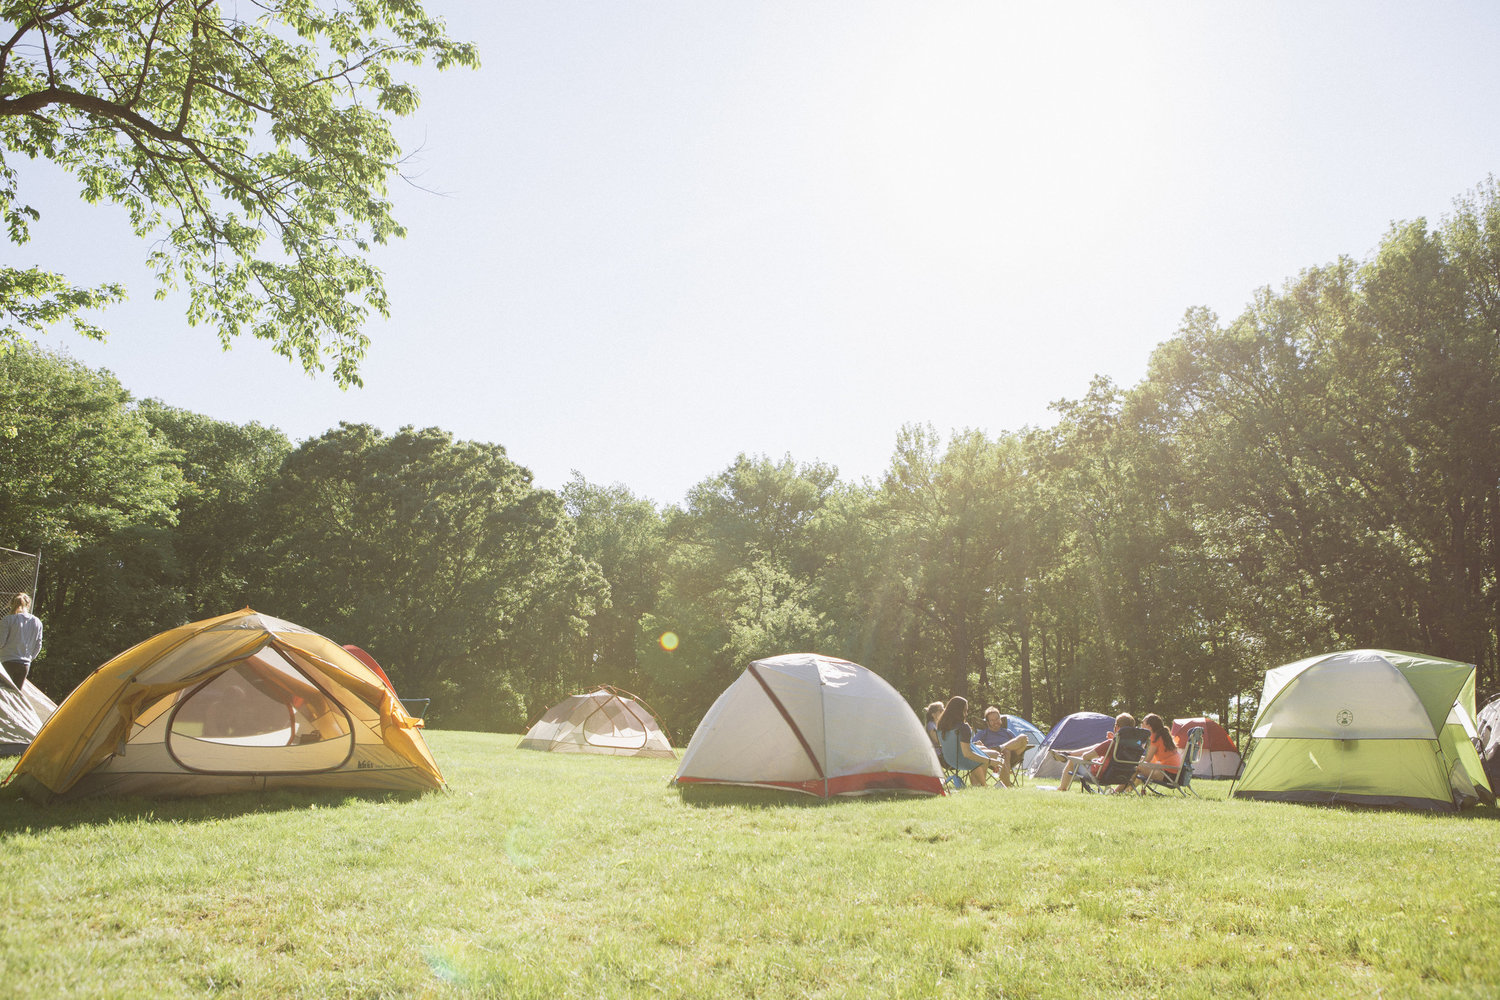 OutdoorFest NYC Campout — OutdoorFest